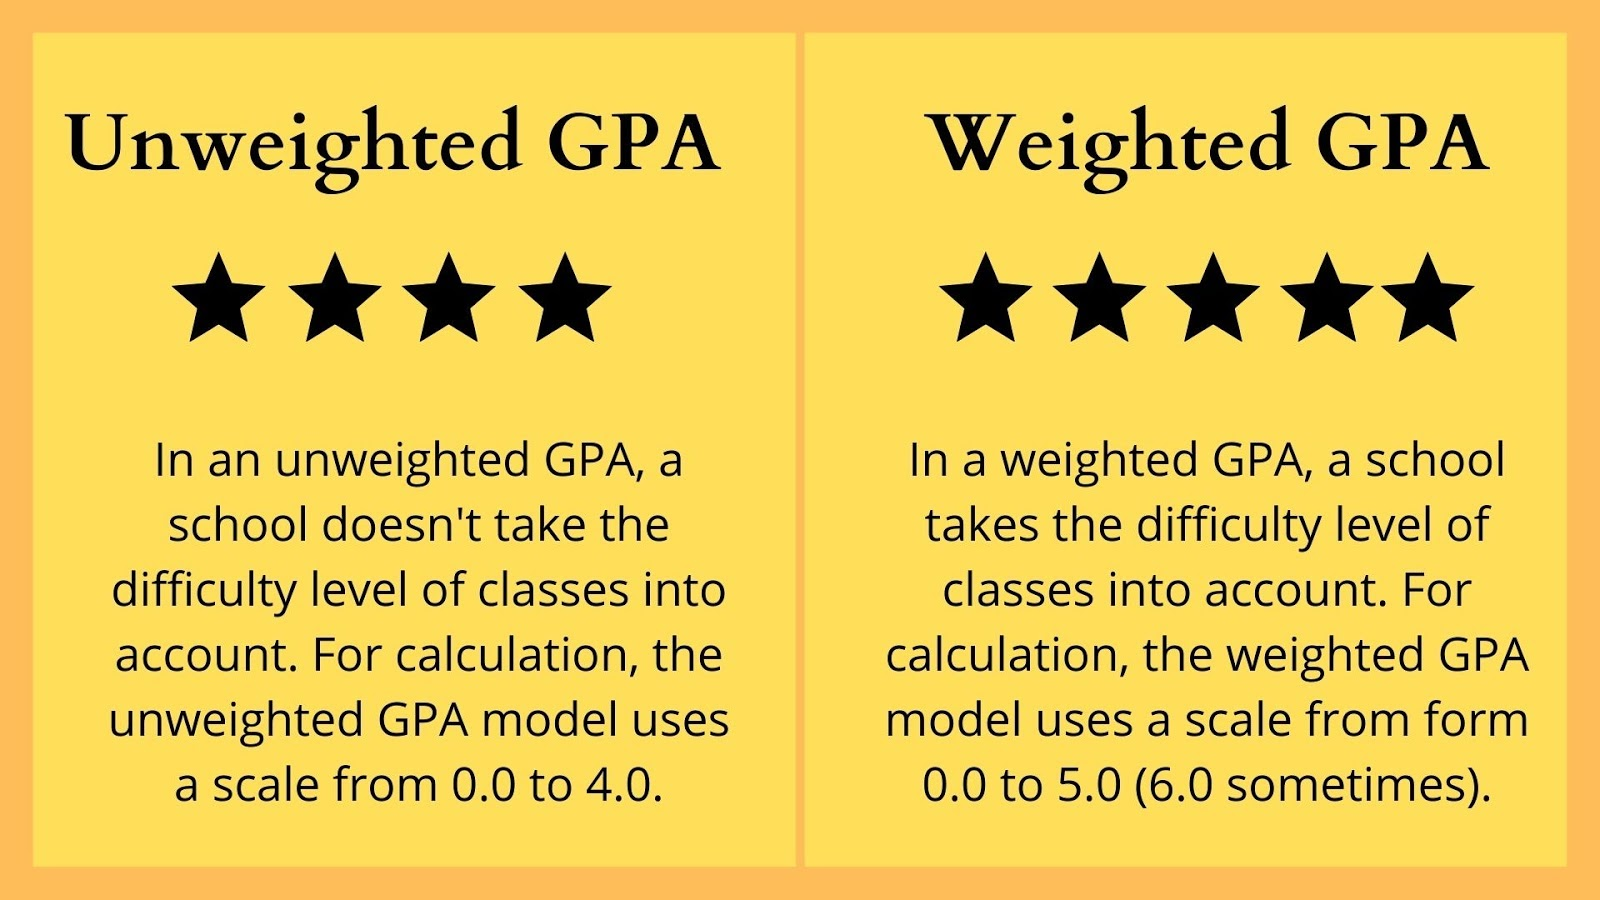 Unweighted GPA vs Weighted GPA